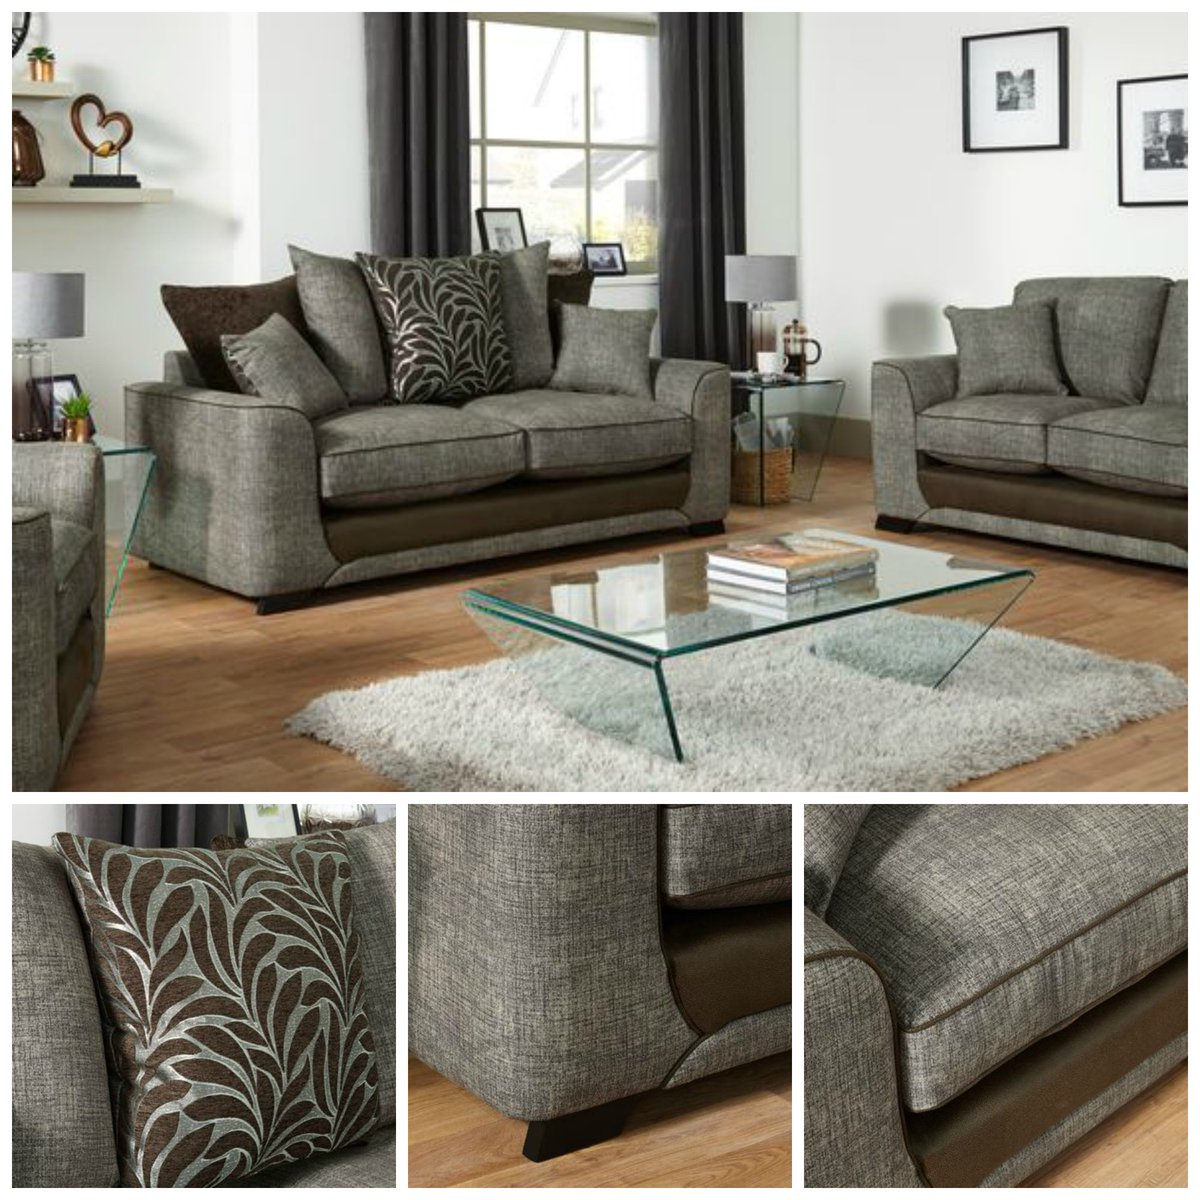 Scs Sofas On Twitter Add Some Style To Your Home With This Reuben 3 Seater Terback Sofa Now Only 399 Https T Co K2fycr2slk